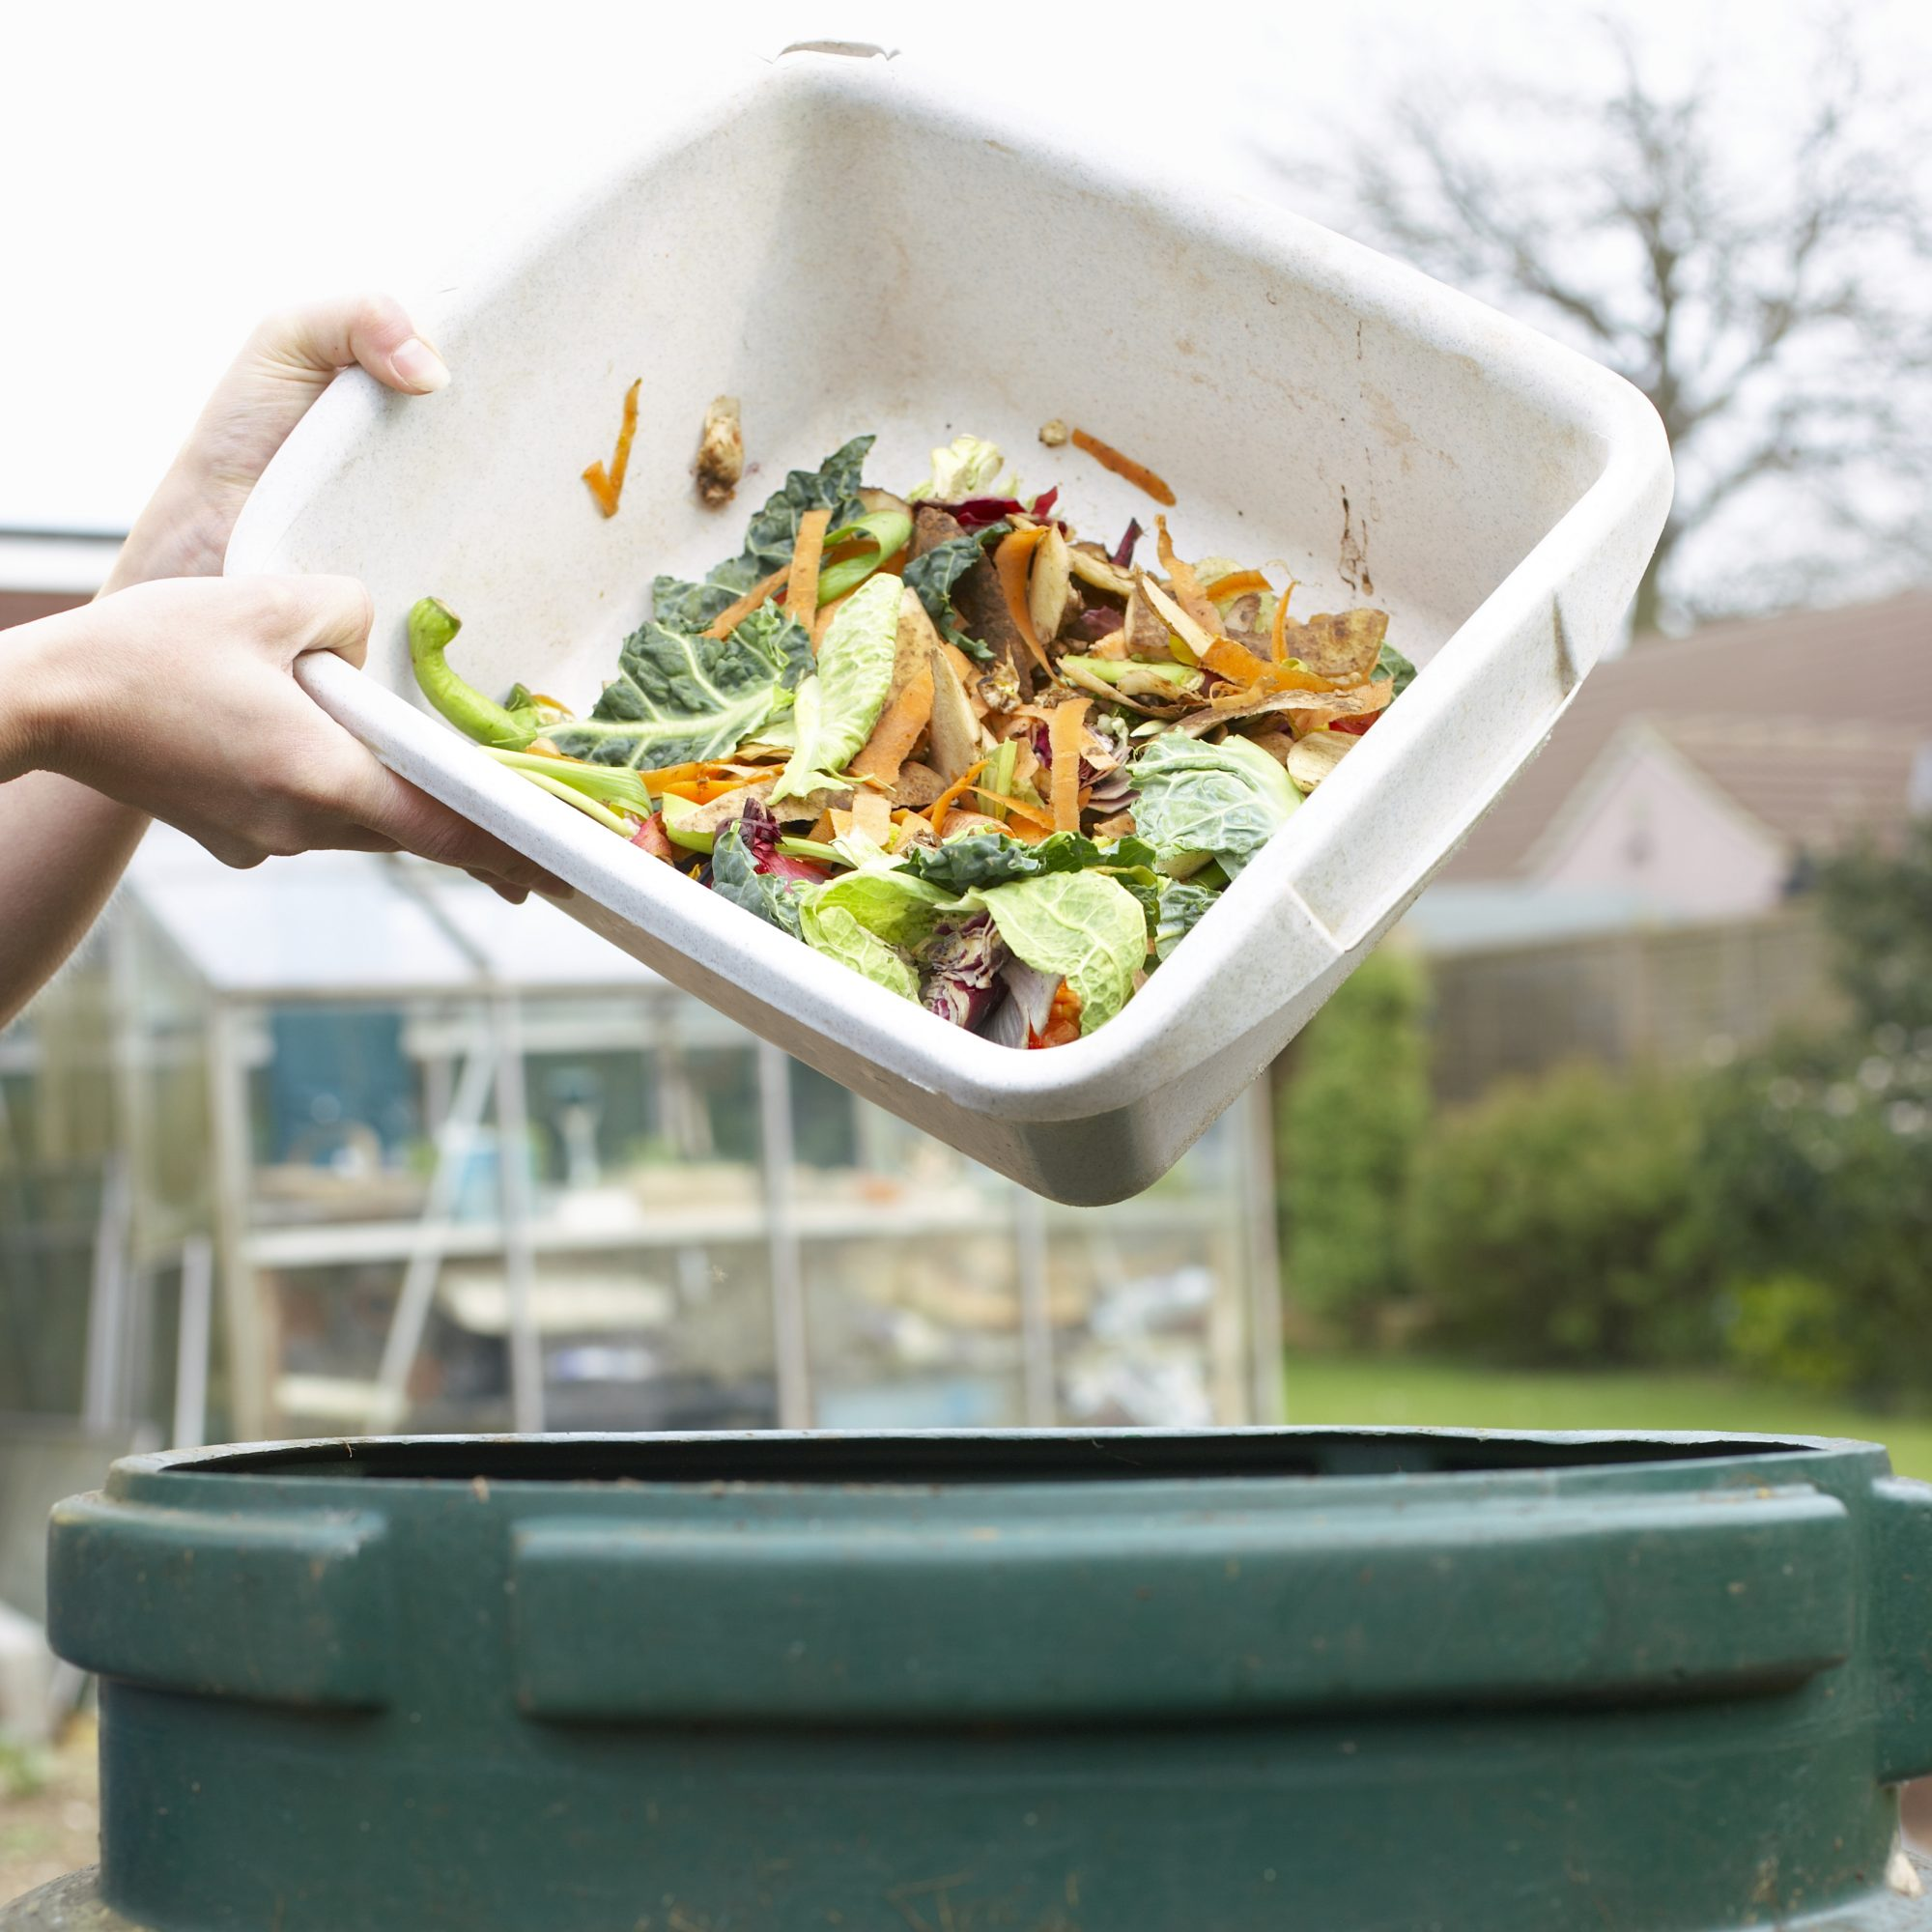 Garbage Inspections To Ensure Composting Is Illegal In Seattle